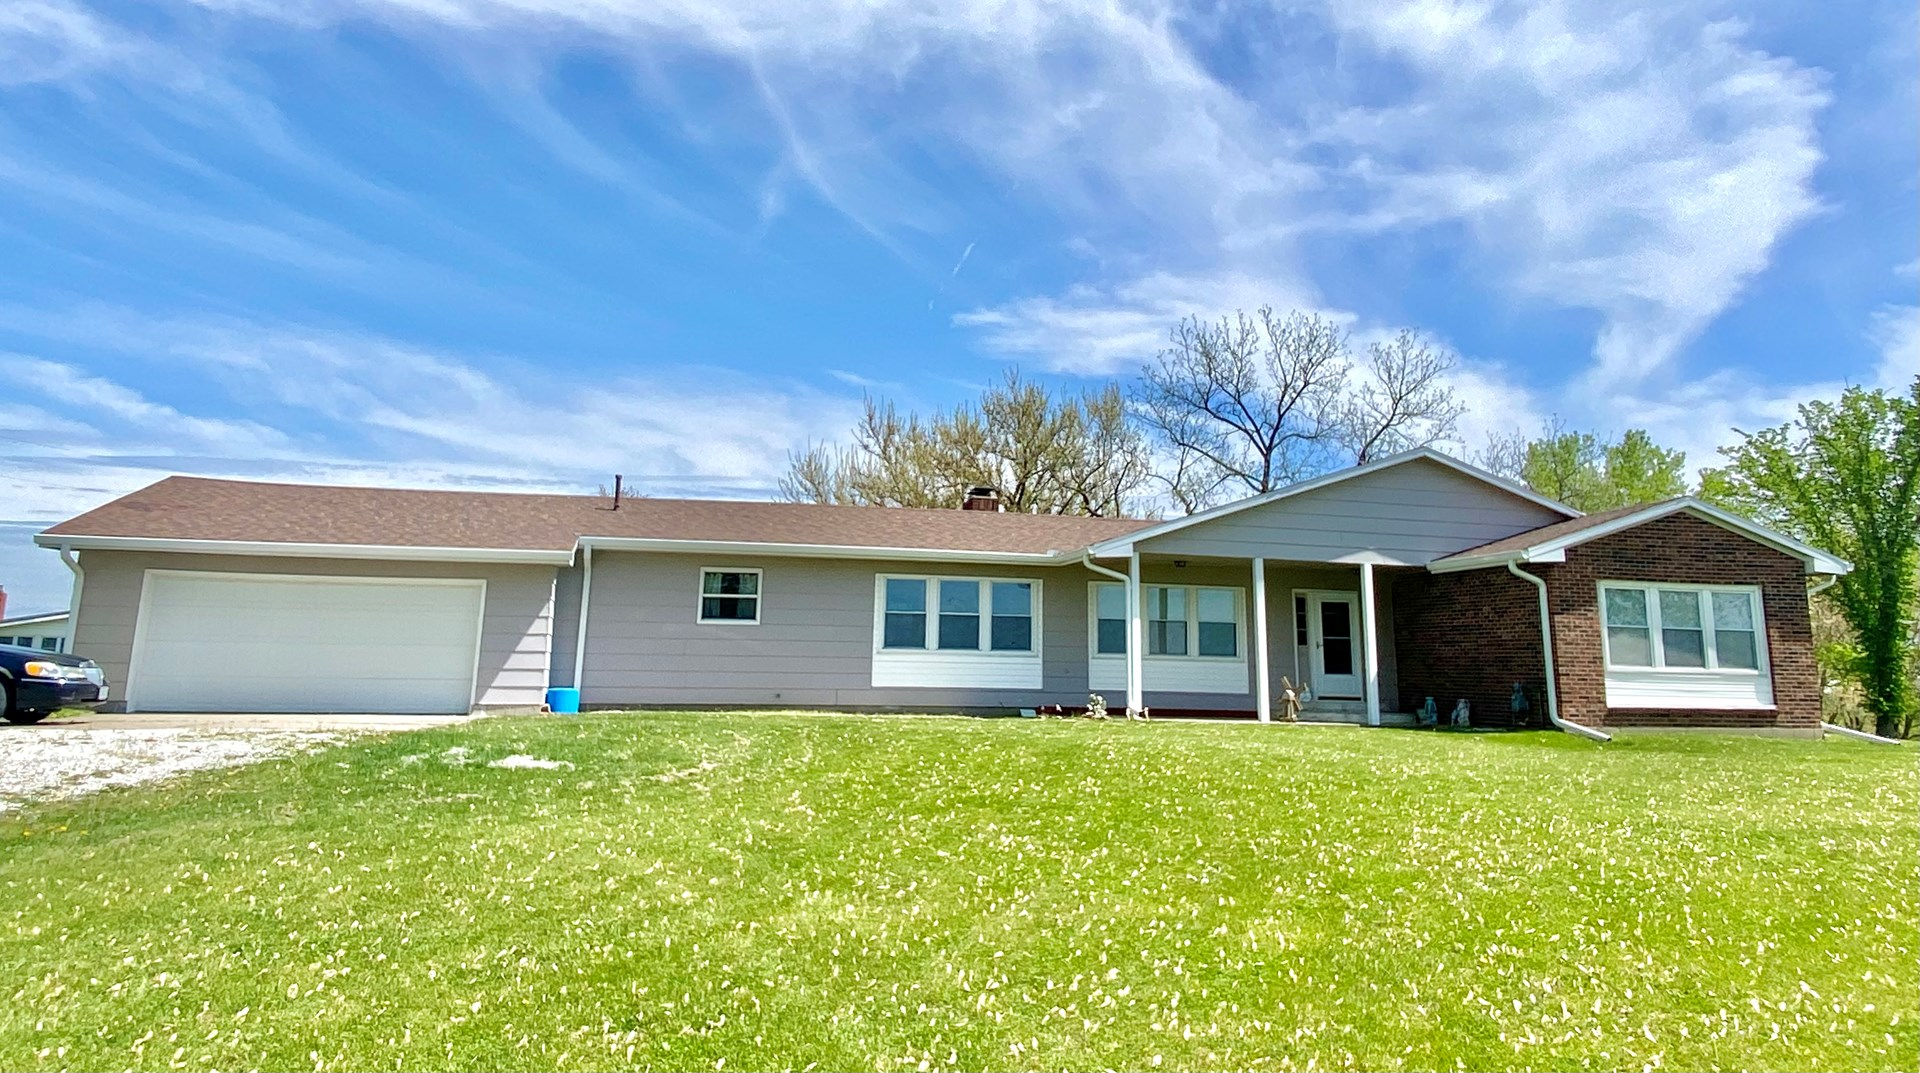 For Sale Ranch Home on 1.5 Acres, Princeton MO